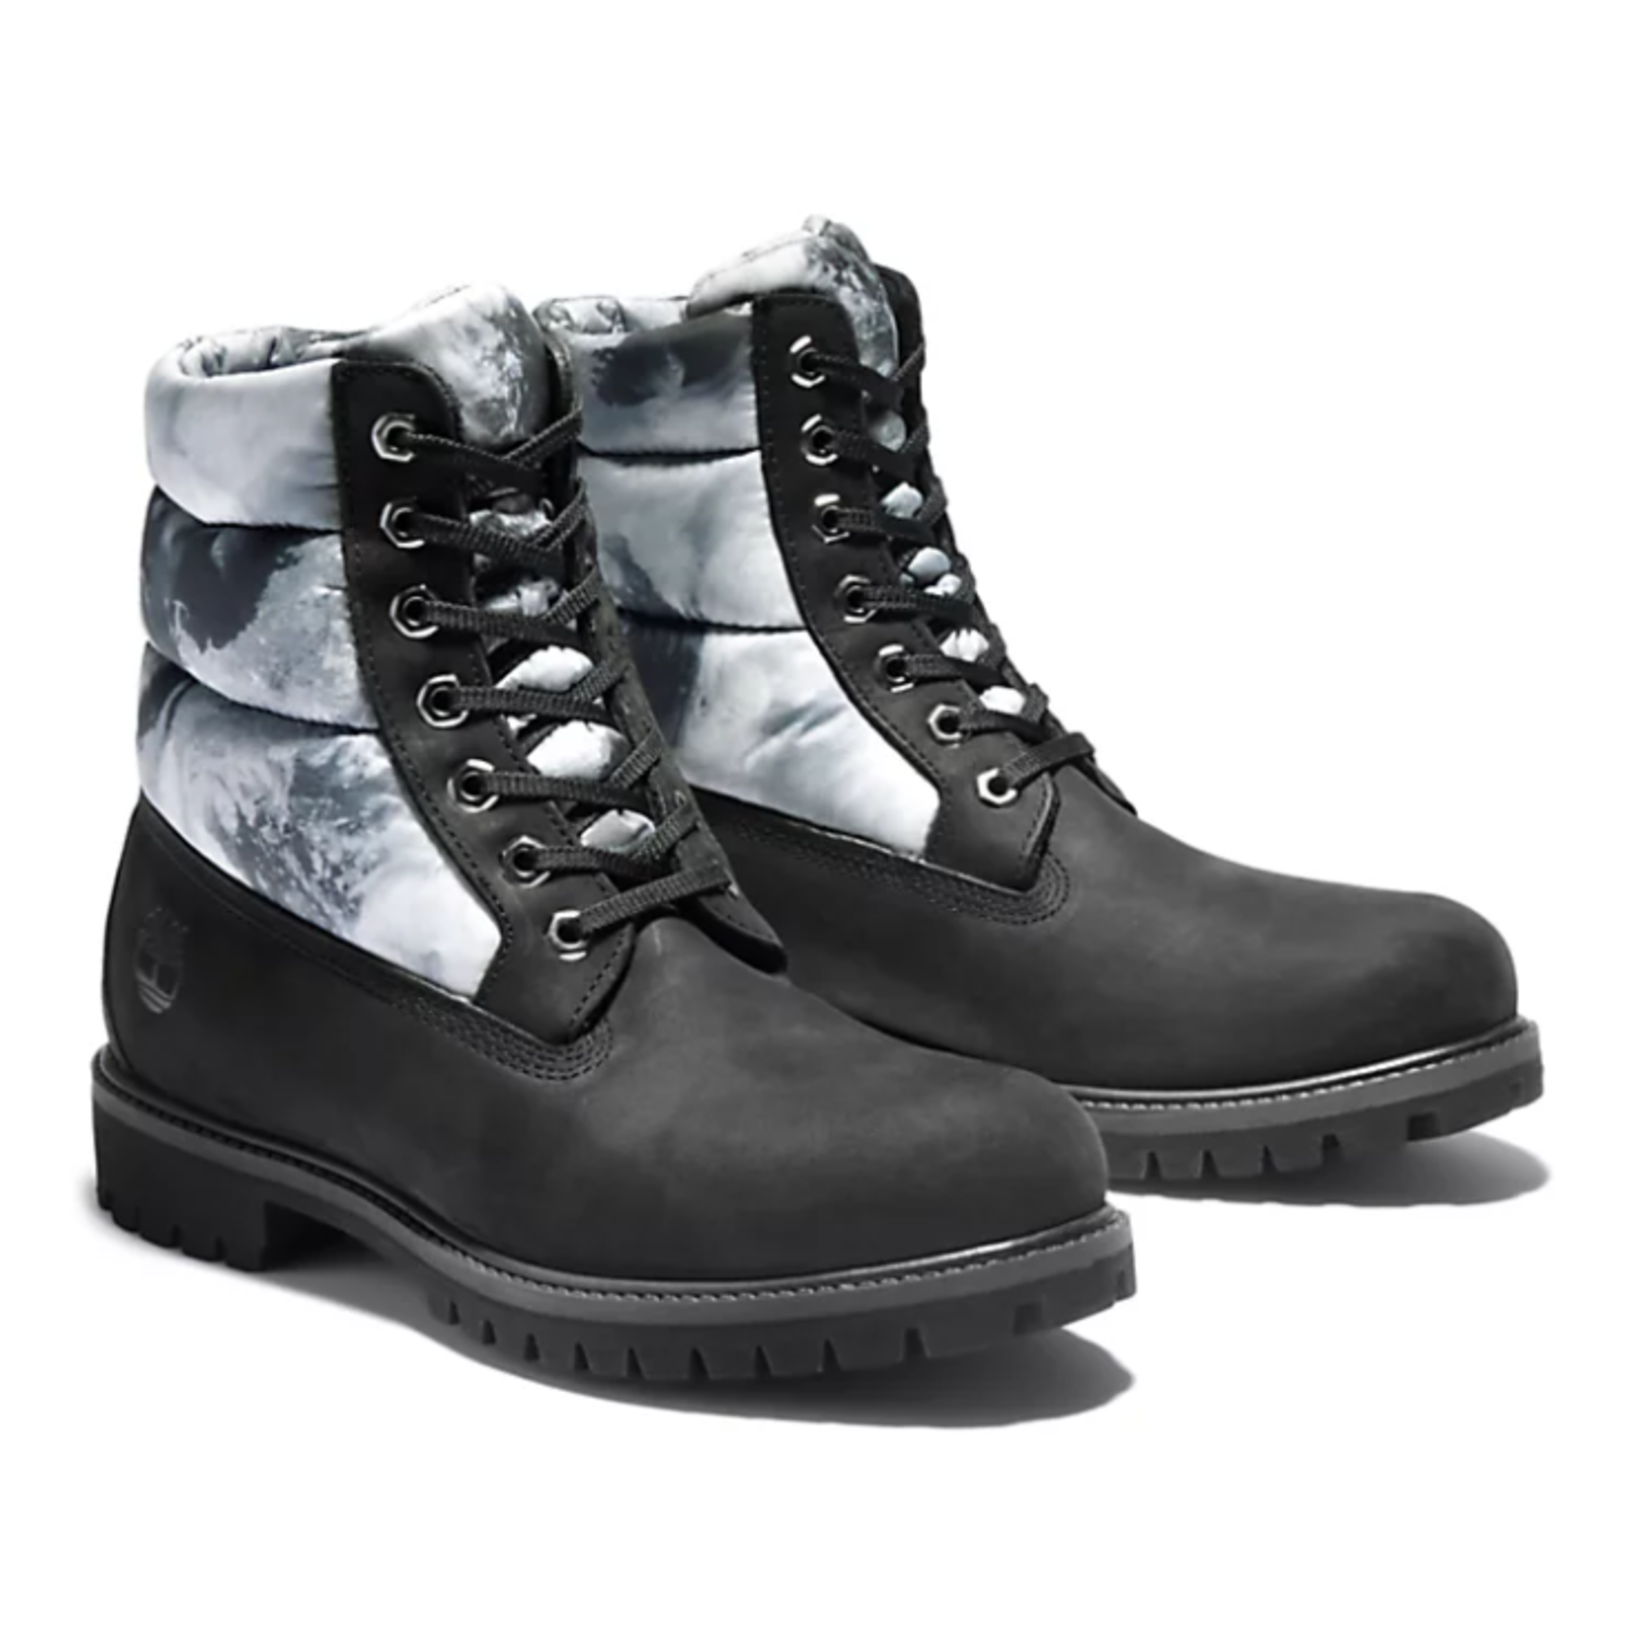 Timberland CLIMATE PACK PREMIUM 6 INCH QUILT BOOT FOR MEN IN BLACK